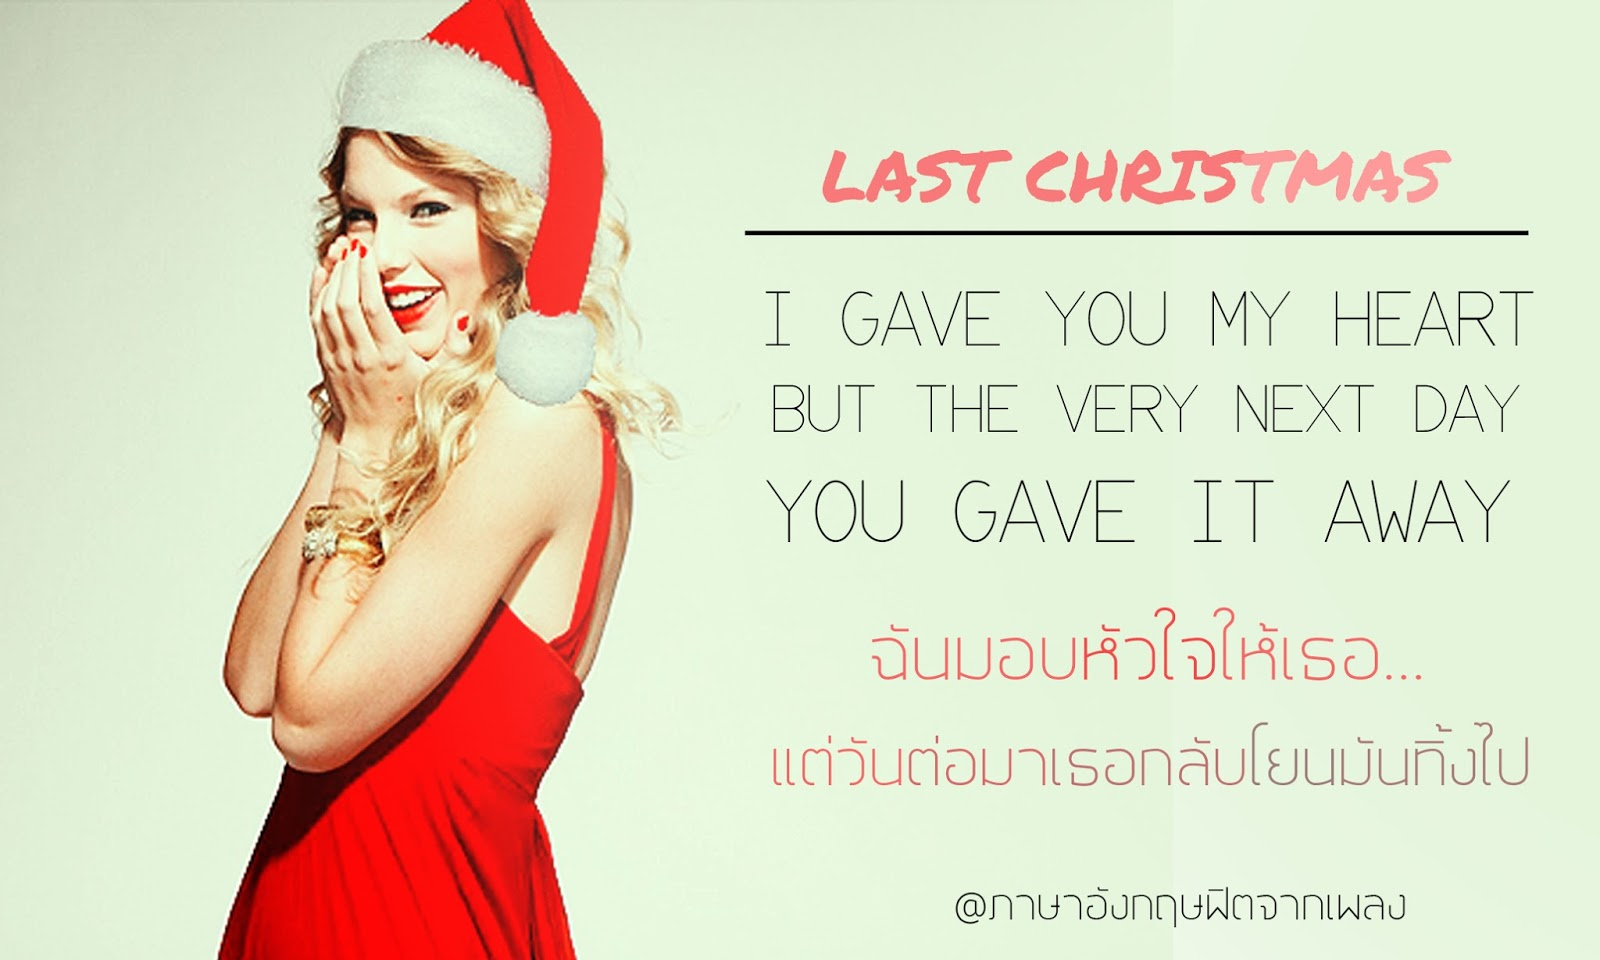 last christmas taylor swift - Last Christmas By Taylor Swift